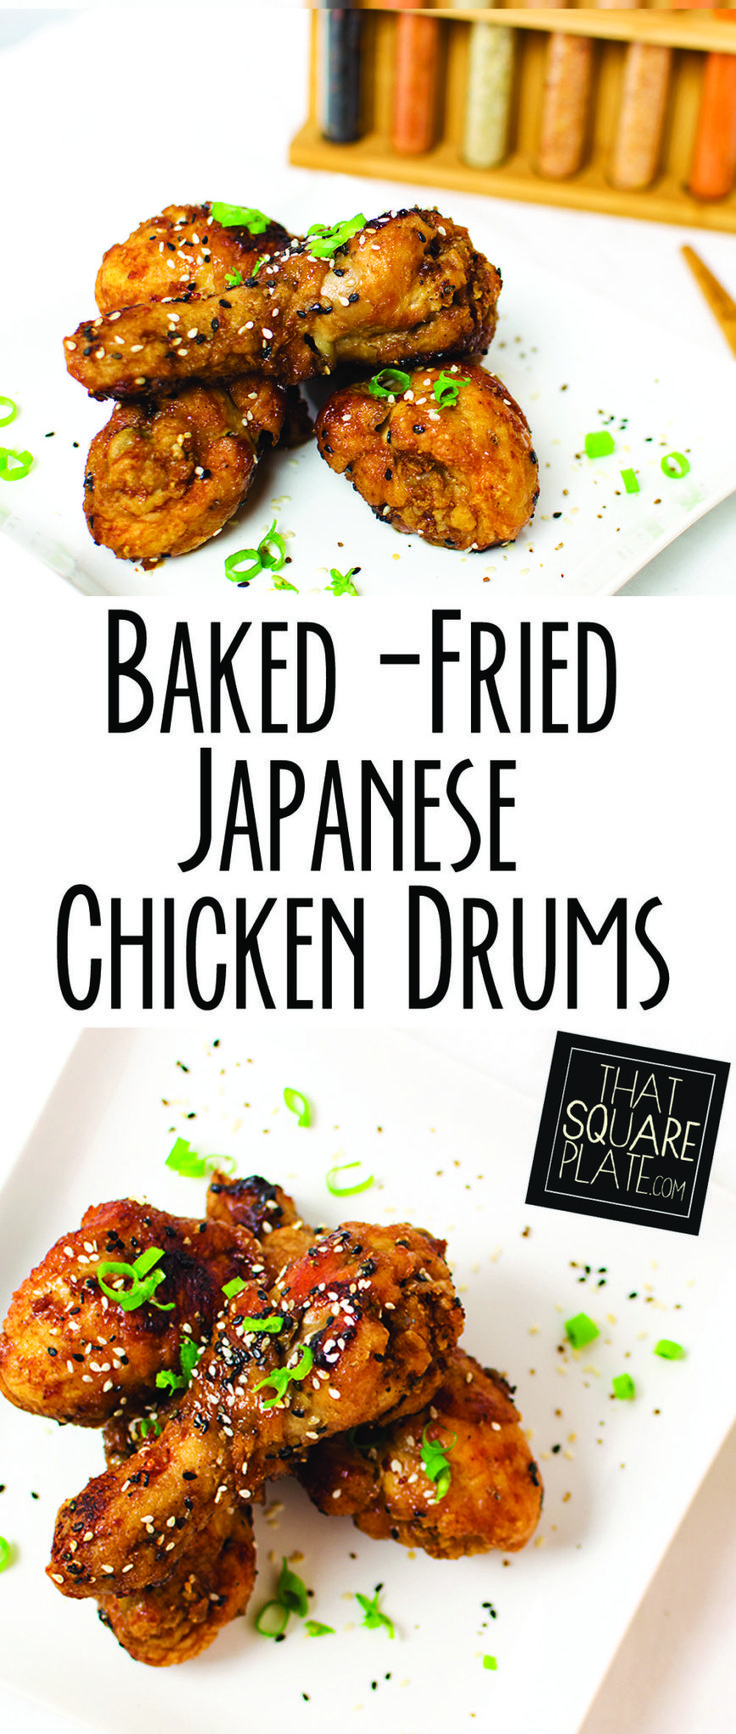 These chicken drums are first fried, tossed in an salty-sweet sauce, and then finished in the oven for a perfect crispy skin and Asian flavor.